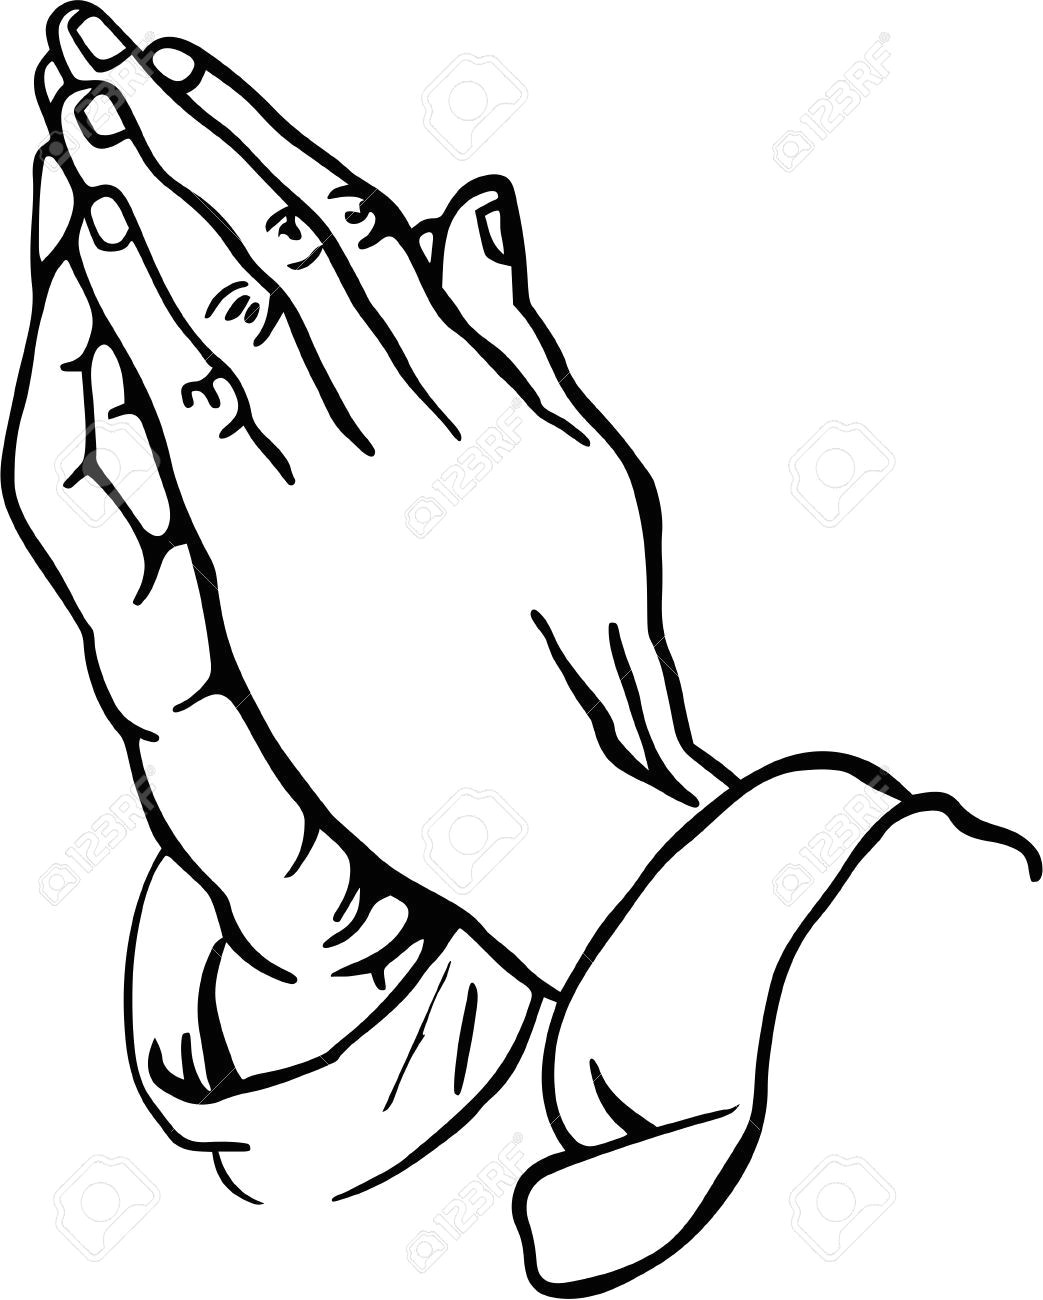 praying hands clipart stock photo picture and royalty free image more